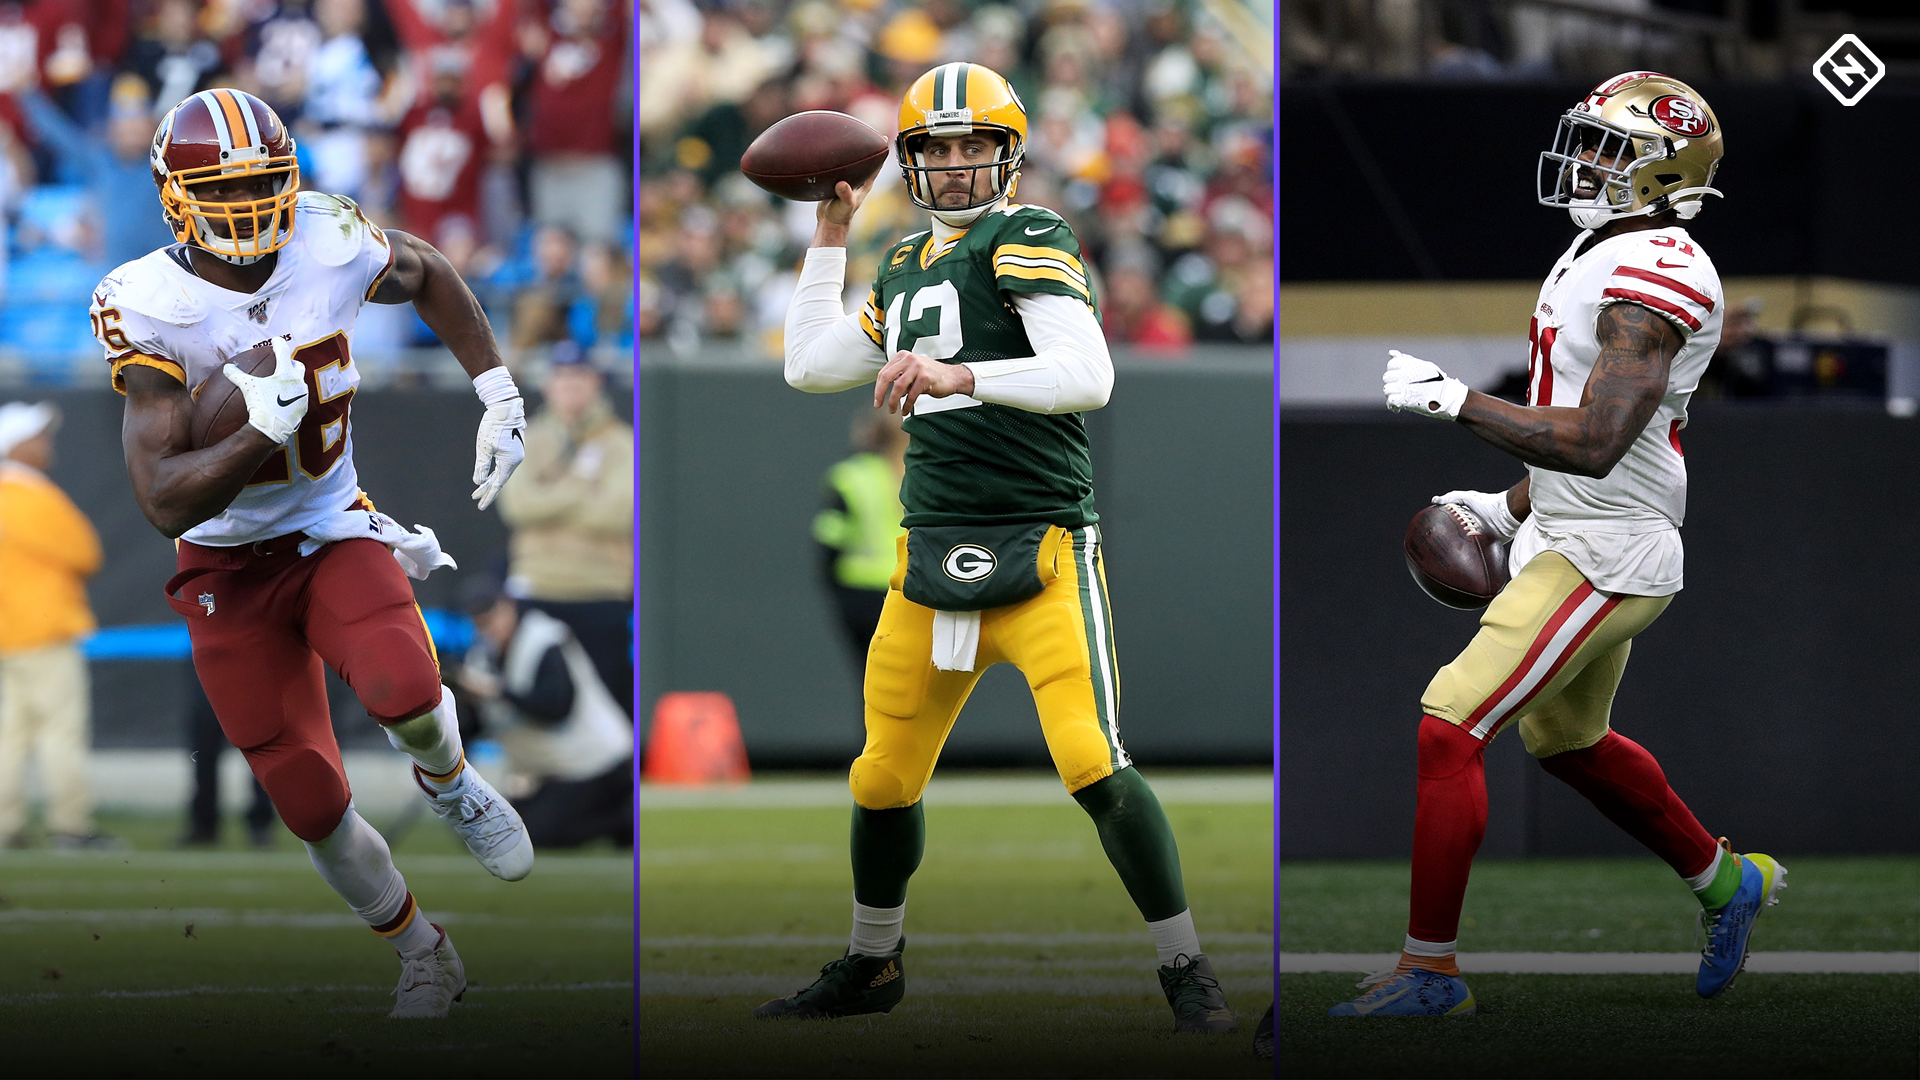 Week 15 Fantasy Busts: Adrian Peterson, Aaron Rodgers, Raheem Mostert among risky playoff 'starts'